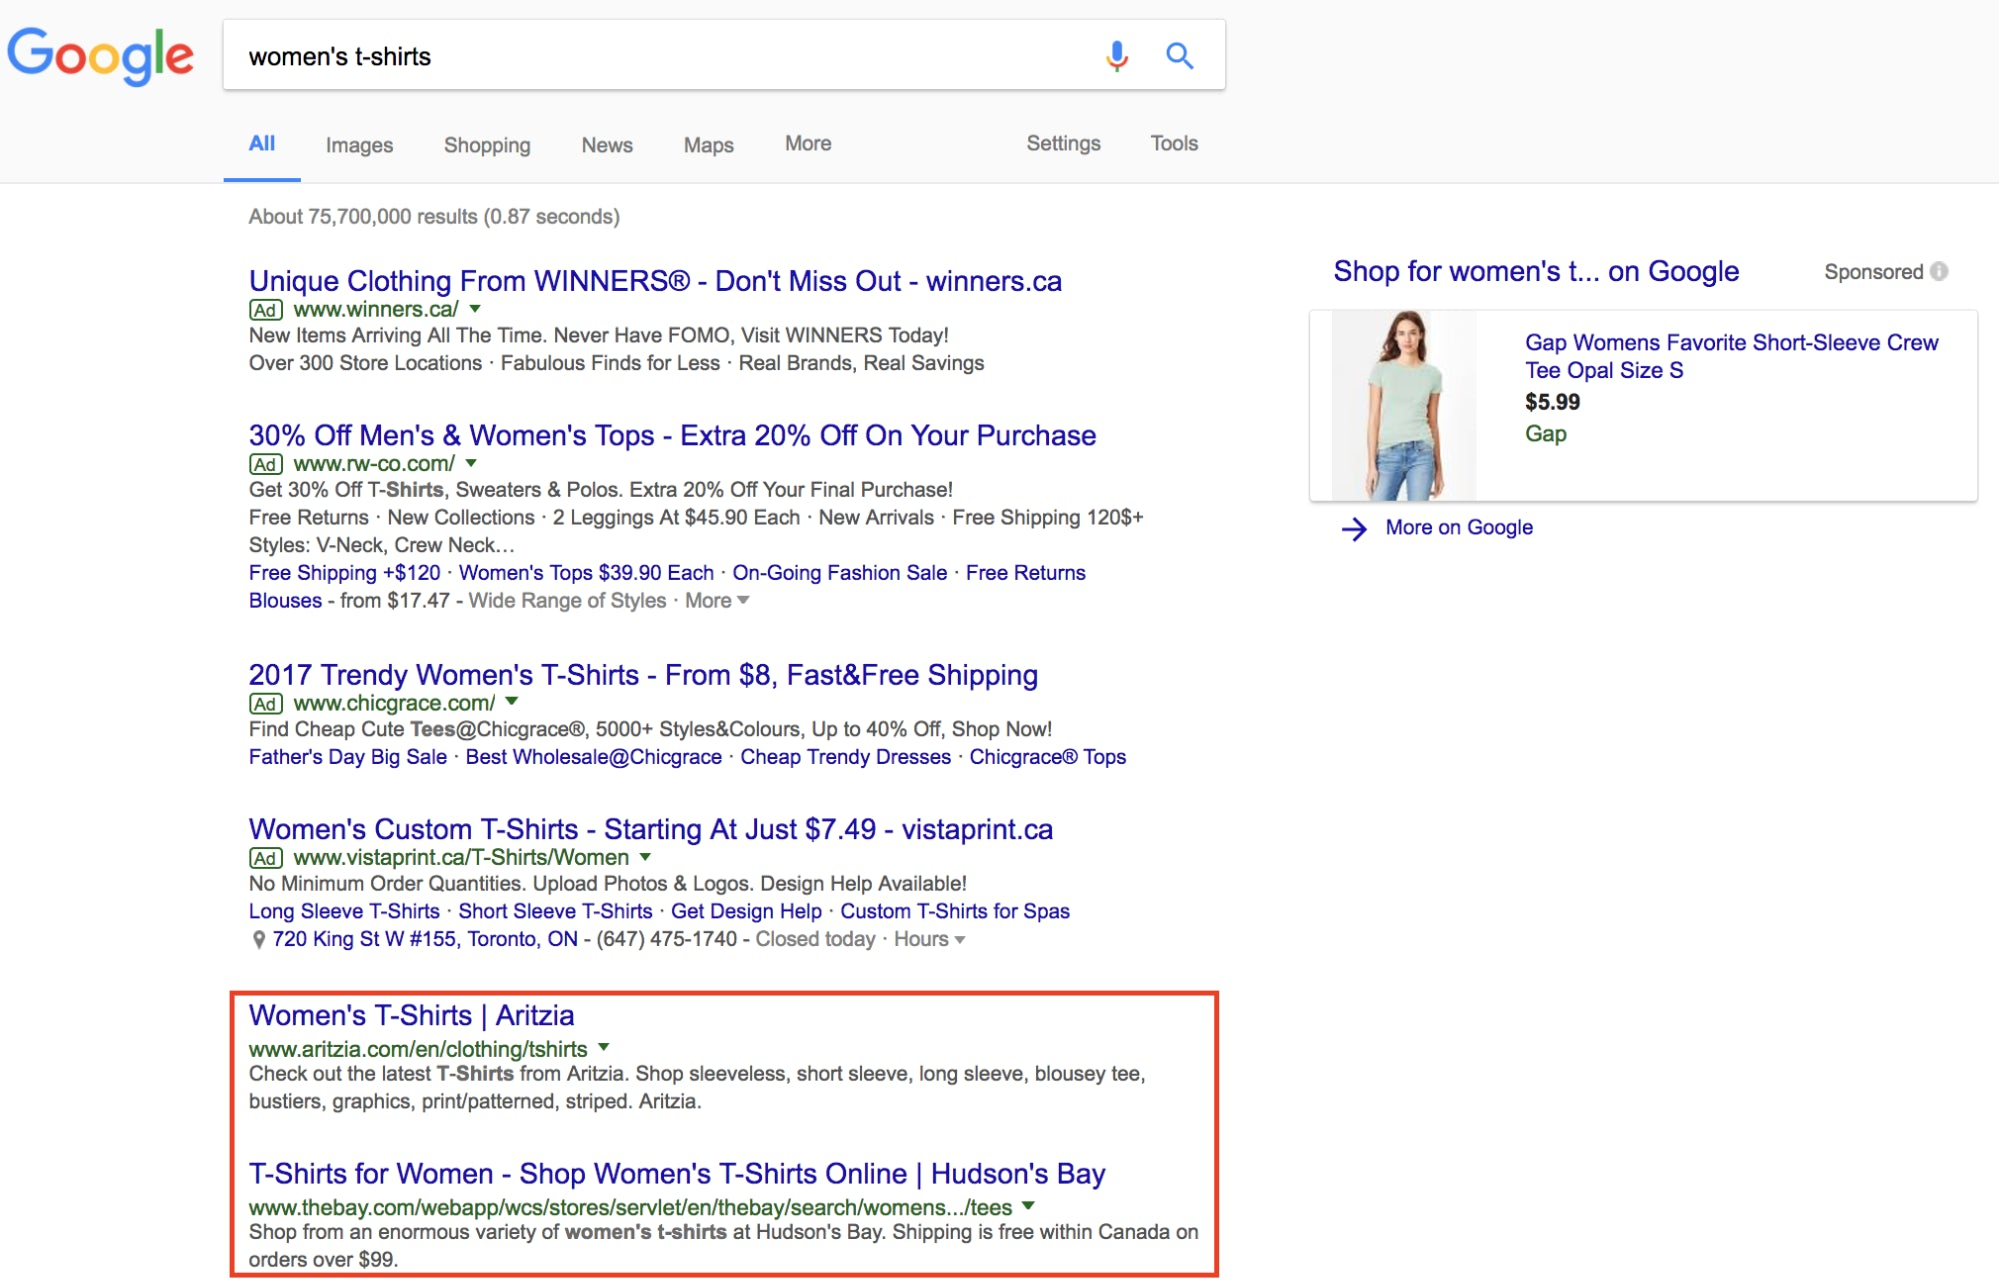 Organic search engine results